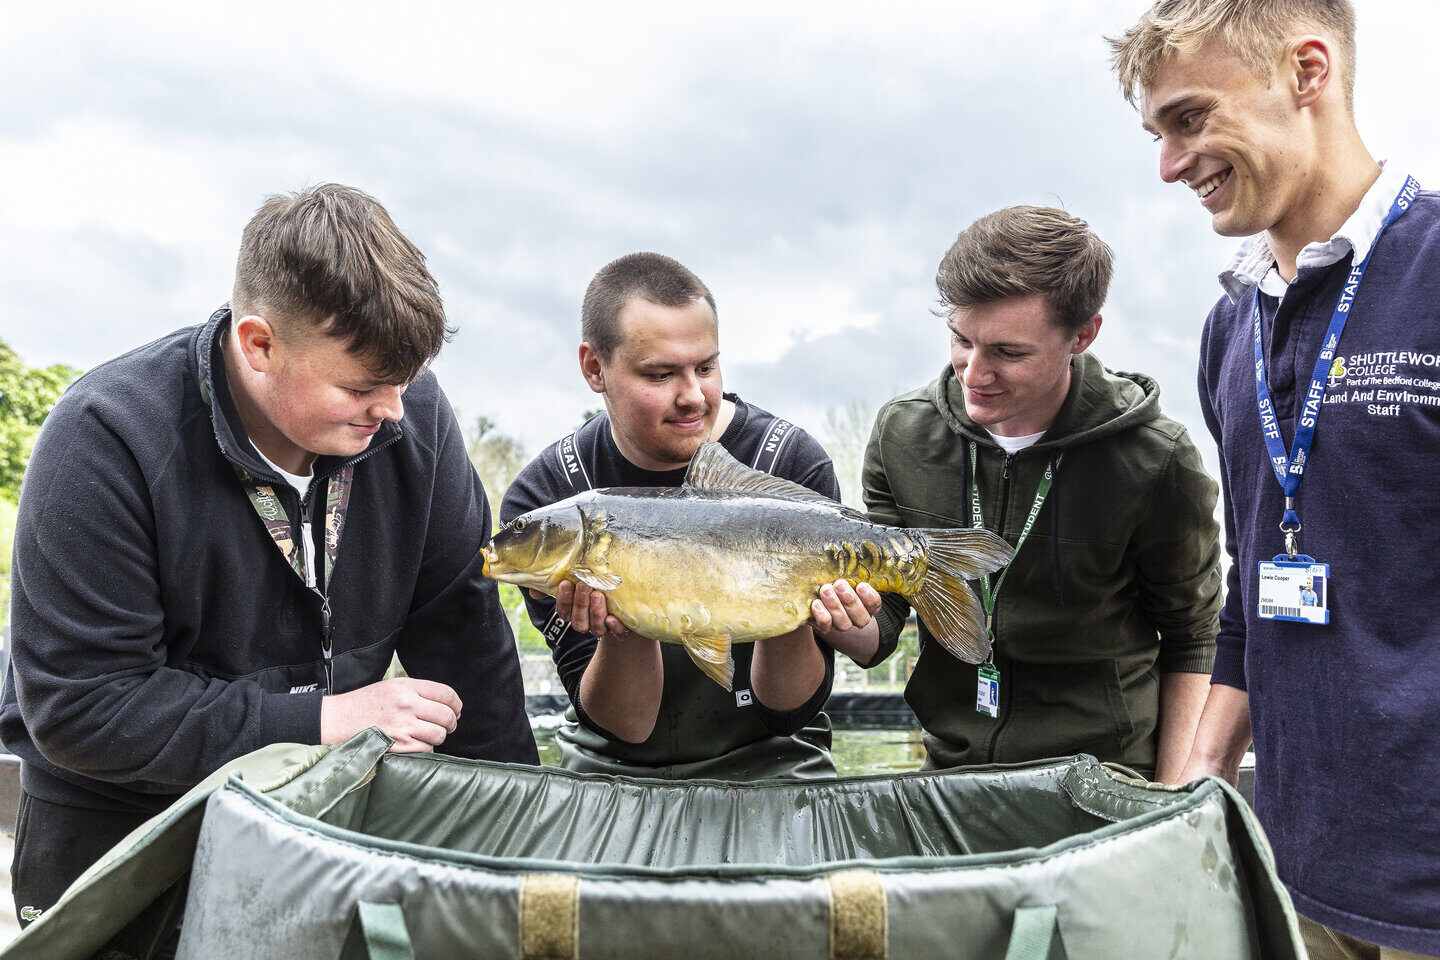 Fish Management students and tutor Shuttleworth College